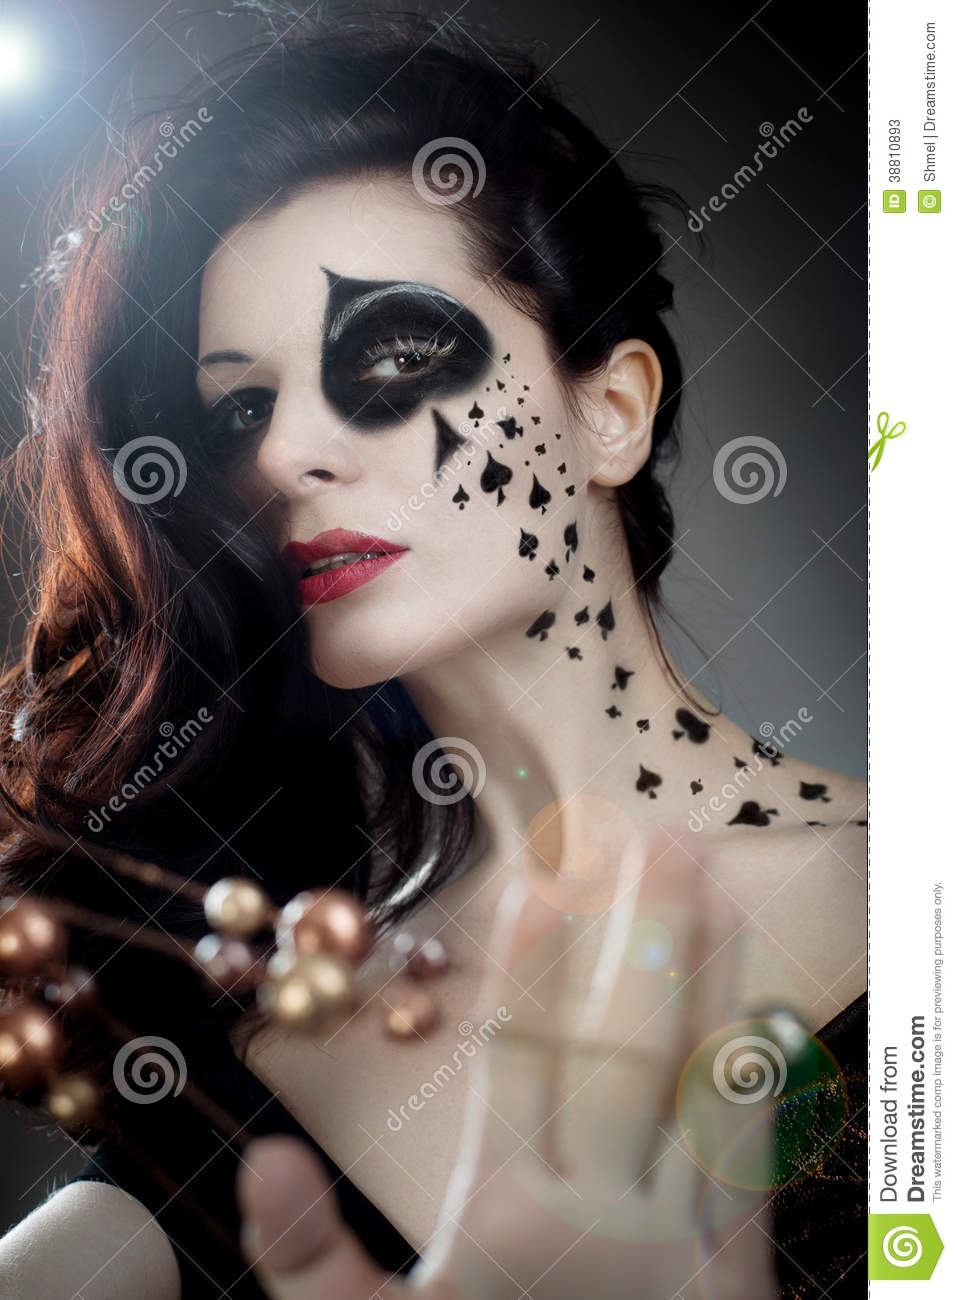 spade card face paint  Queen of Spades stock image. Image of white, spade, necklace ...